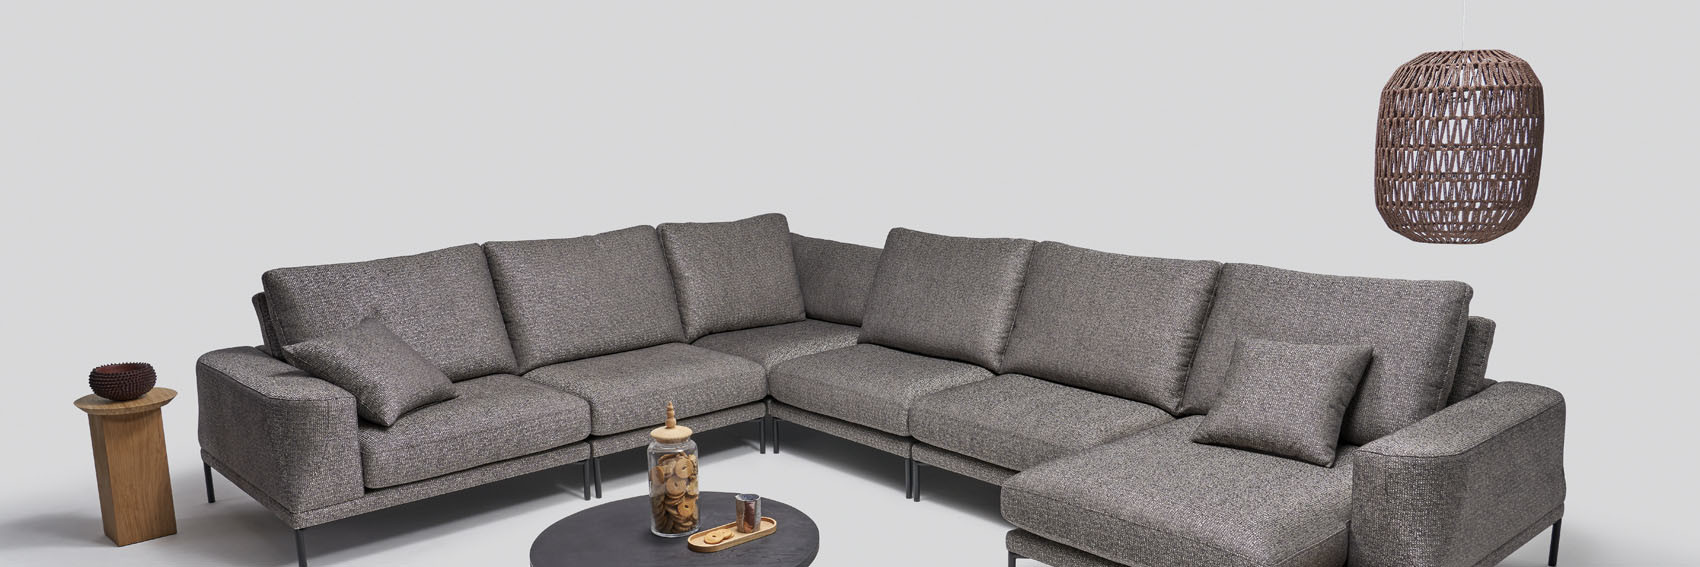 Note collection - living room furniture - modern modular sectional